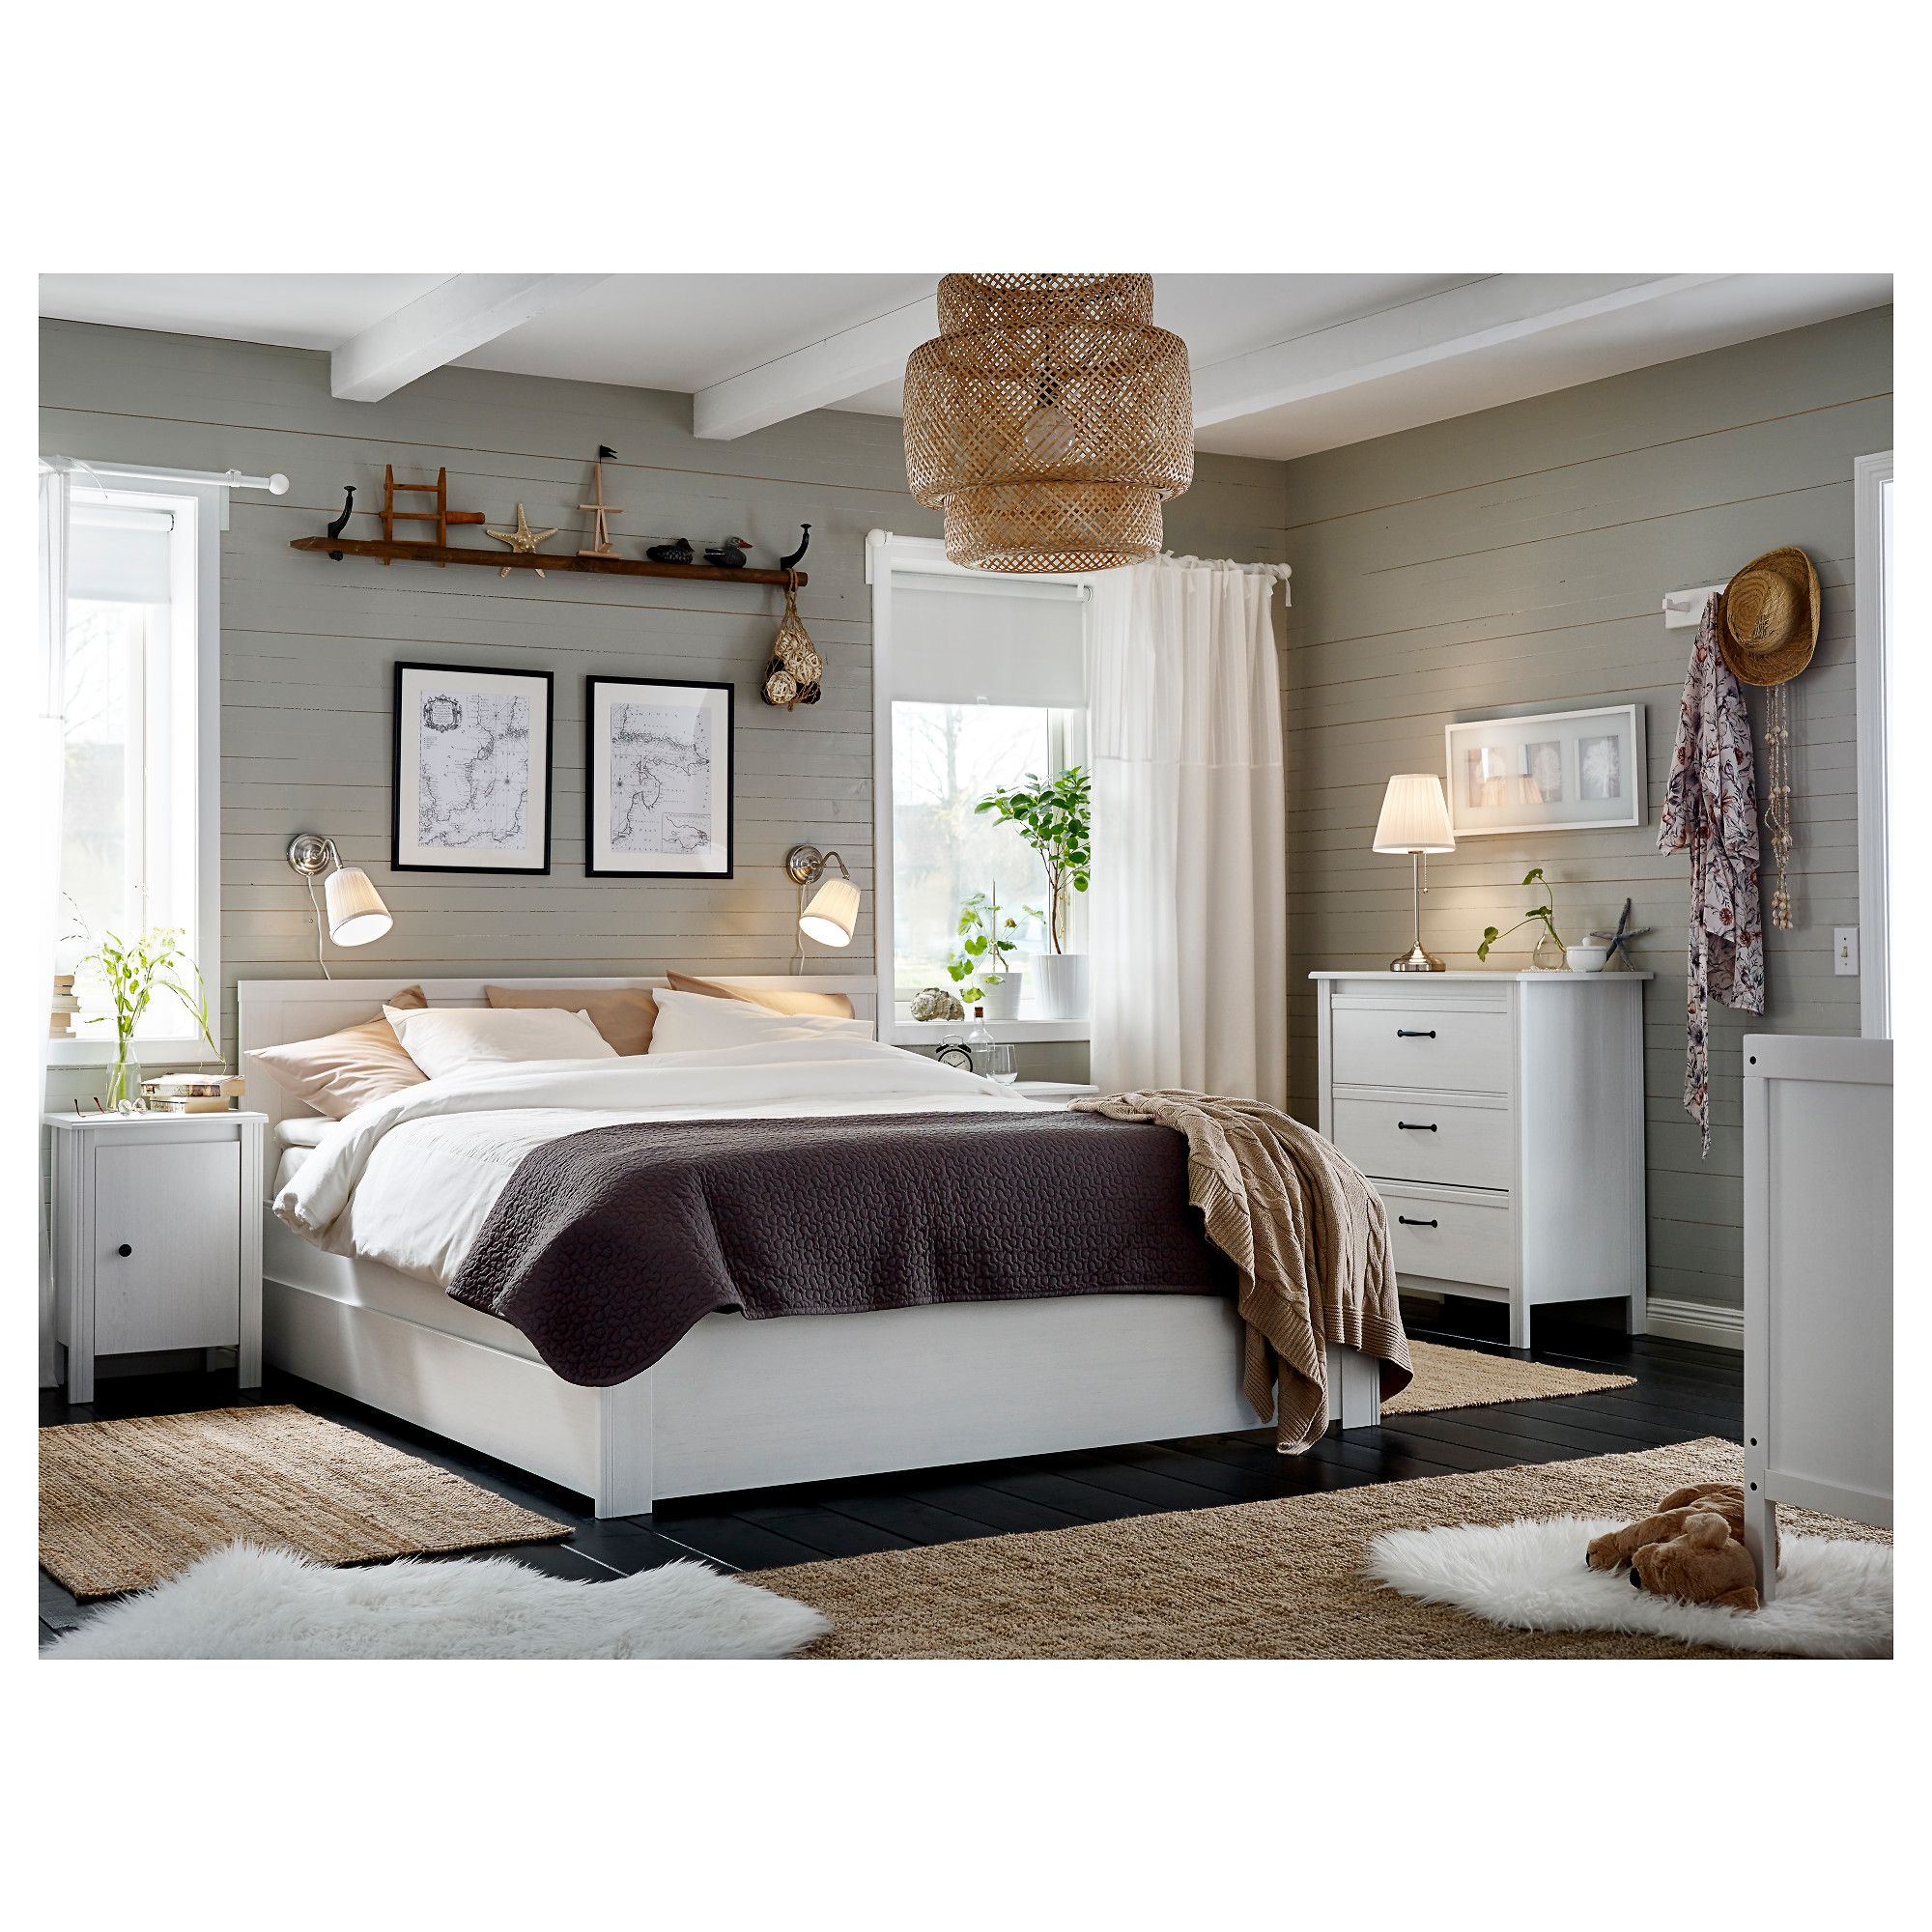 Furniture and Home Furnishings in 2019 Home, Home